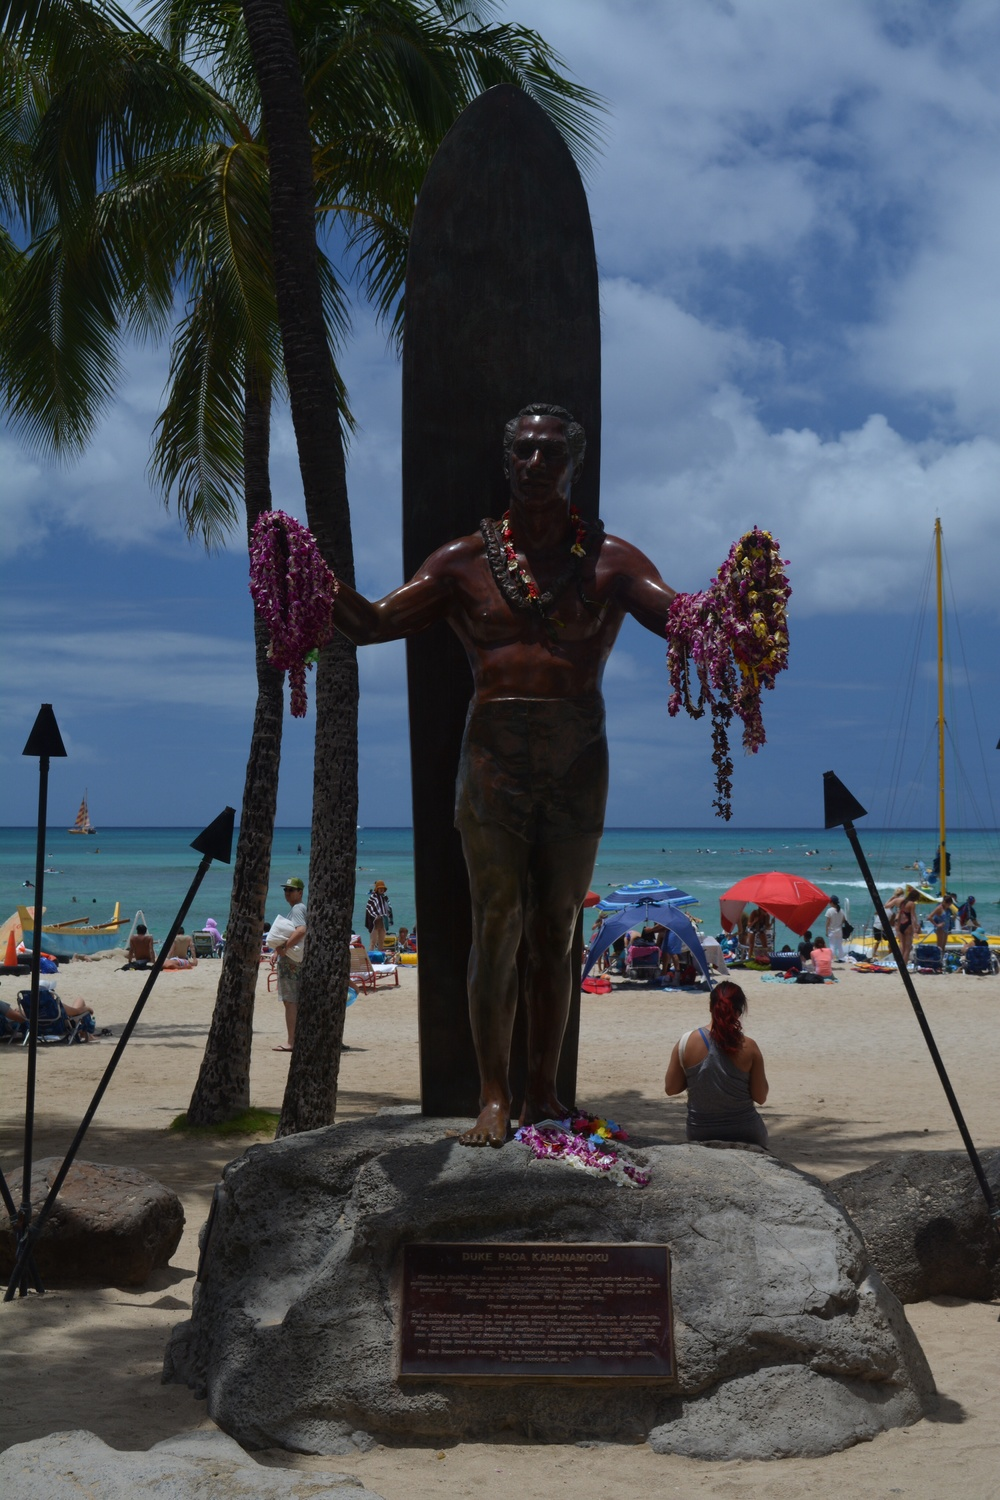 The Duke - the father of modern surfing - standing guard at Waikiki beach